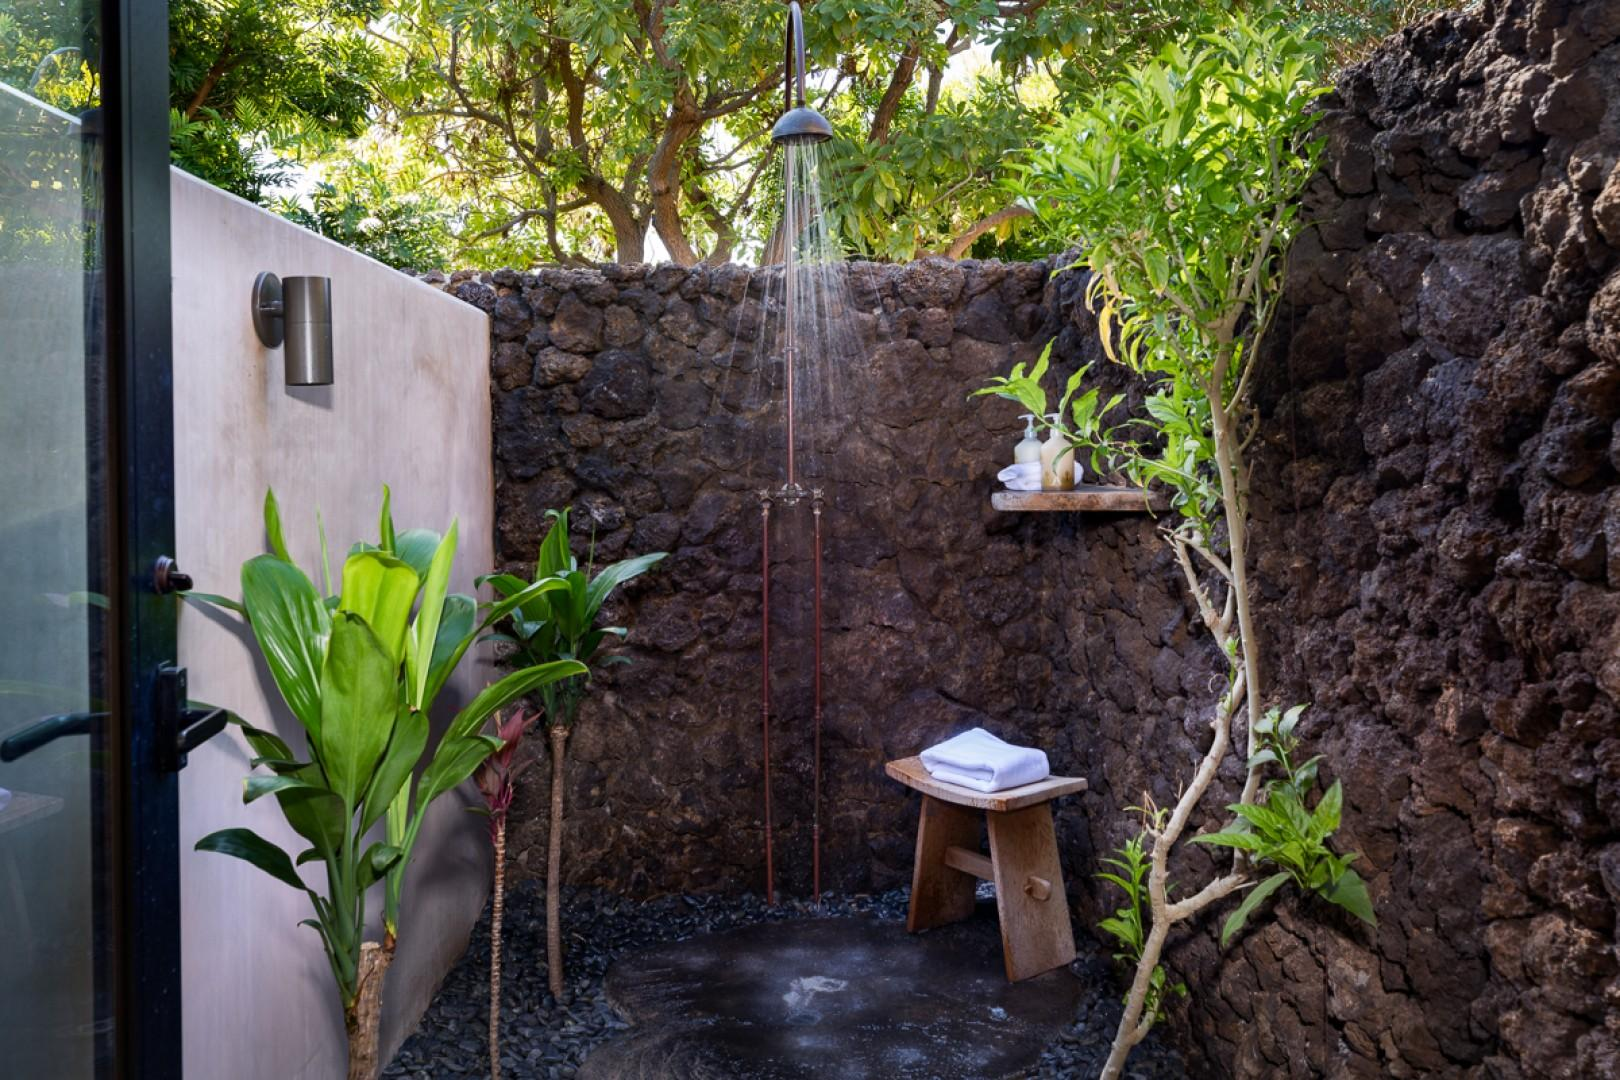 Experience the tranquility of an open-air shower garden